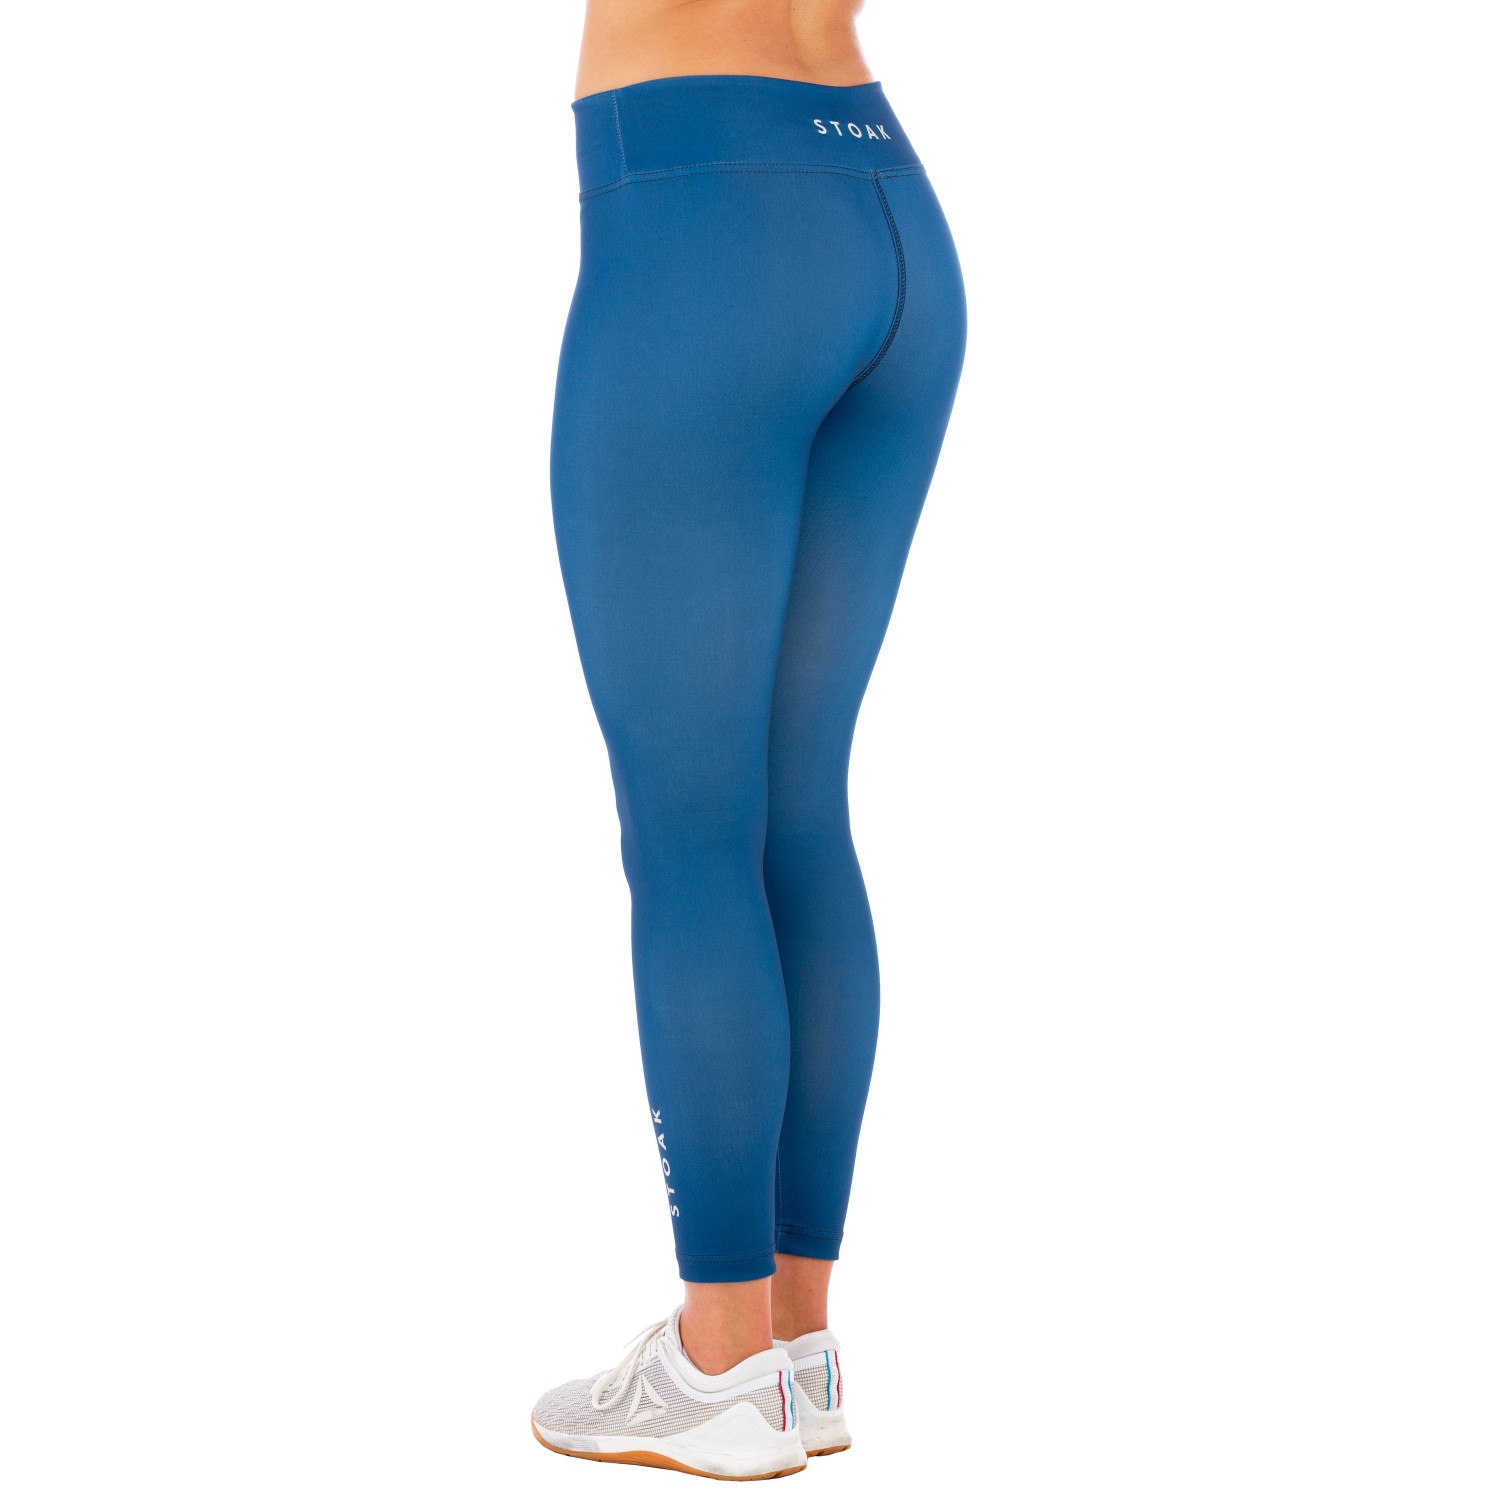 STOAK STEEL Performance Leggings